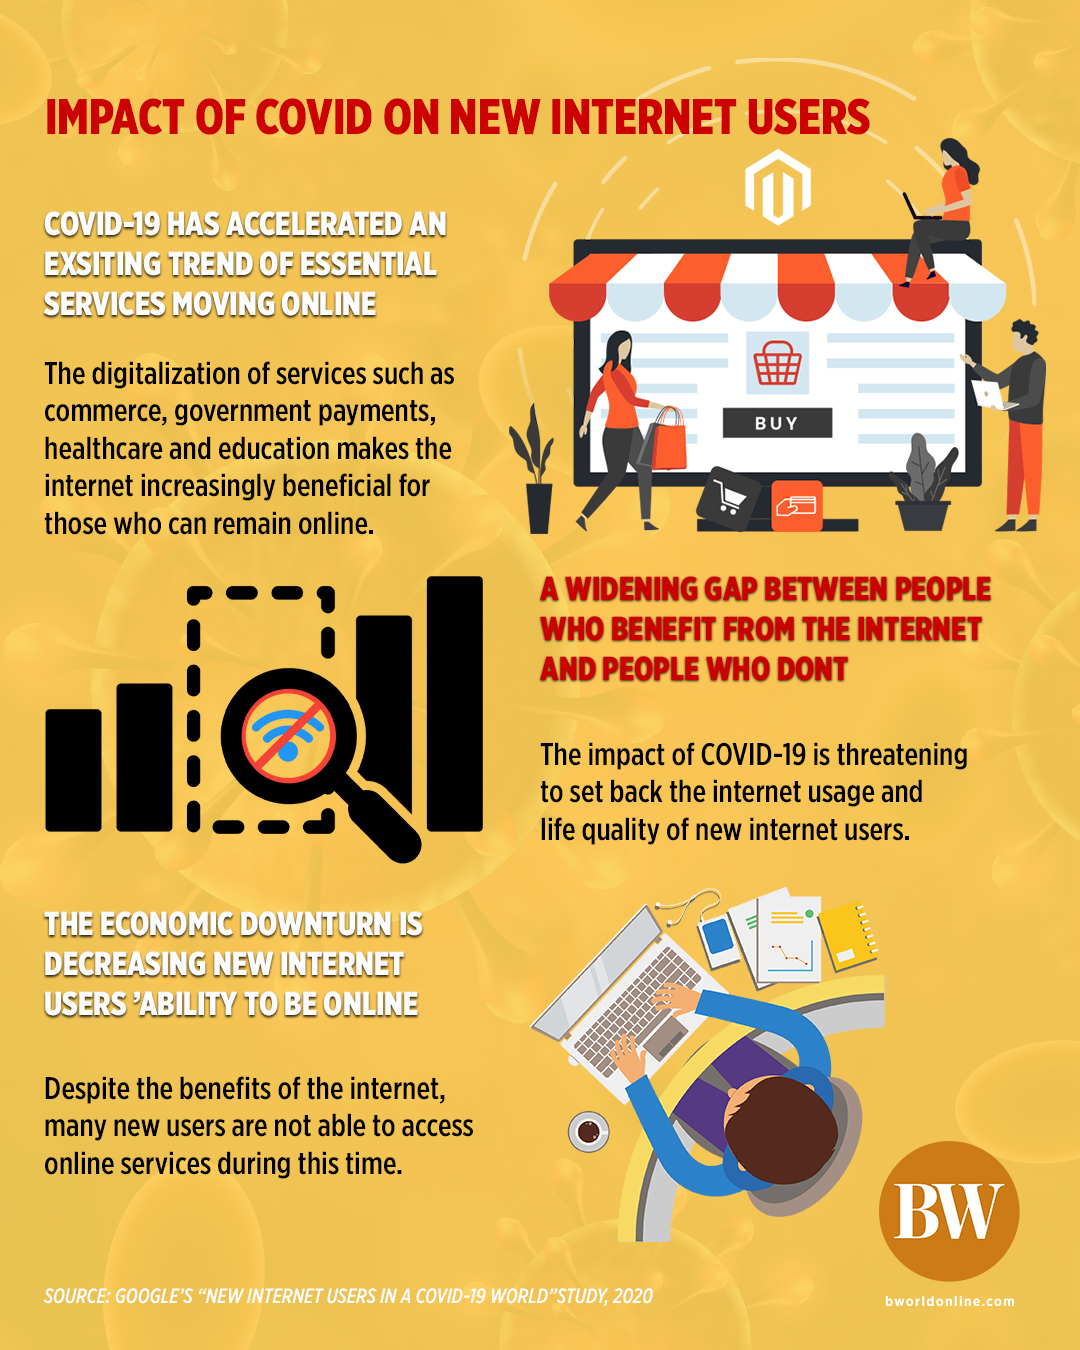 IMPACT OF COVID - COVID-19 widened the gap between Internet haves and have-nots, Filipinos among negatively affected